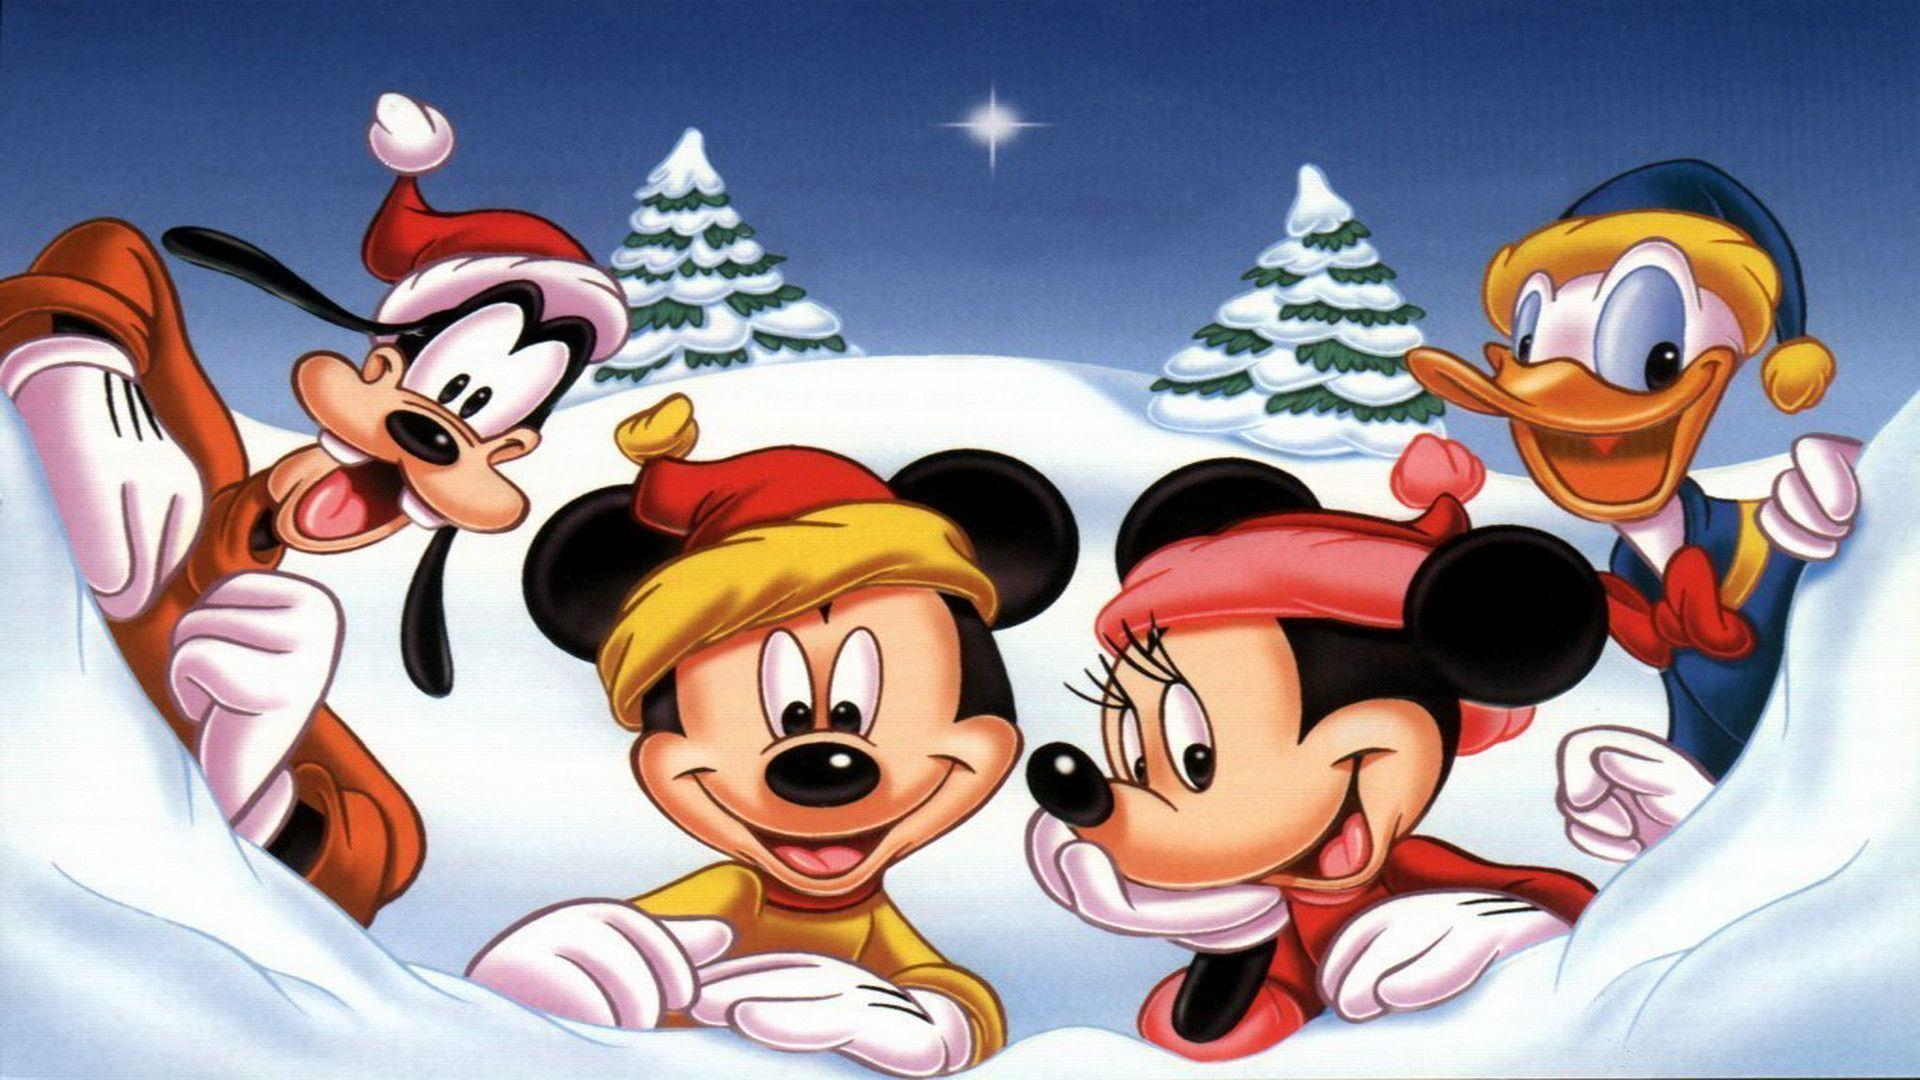 Wallpapers For > Disney Christmas Wallpapers For Desktop